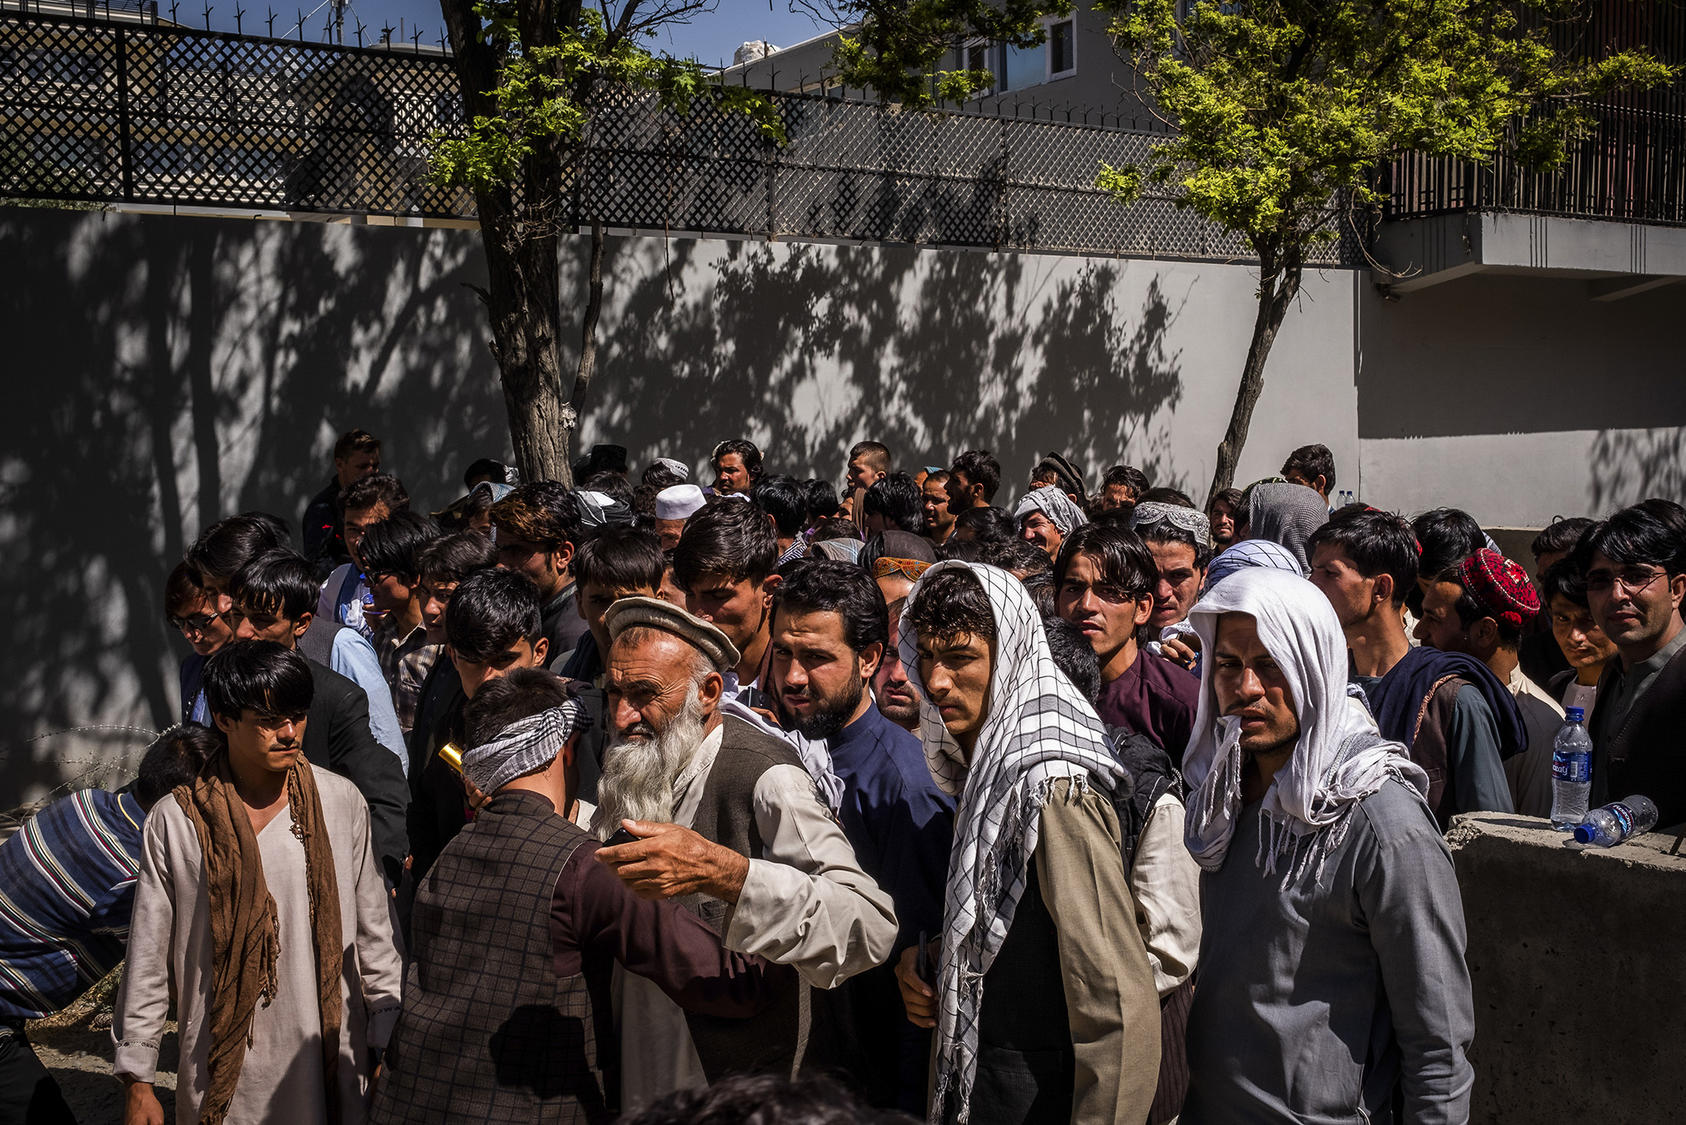 Attendees are searched before entering a political rally in Kabul. Voting under threat of Taliban violence, Afghans across the country cast ballots for parliament on October 20. (Jim Huylebroek/The New York Times)